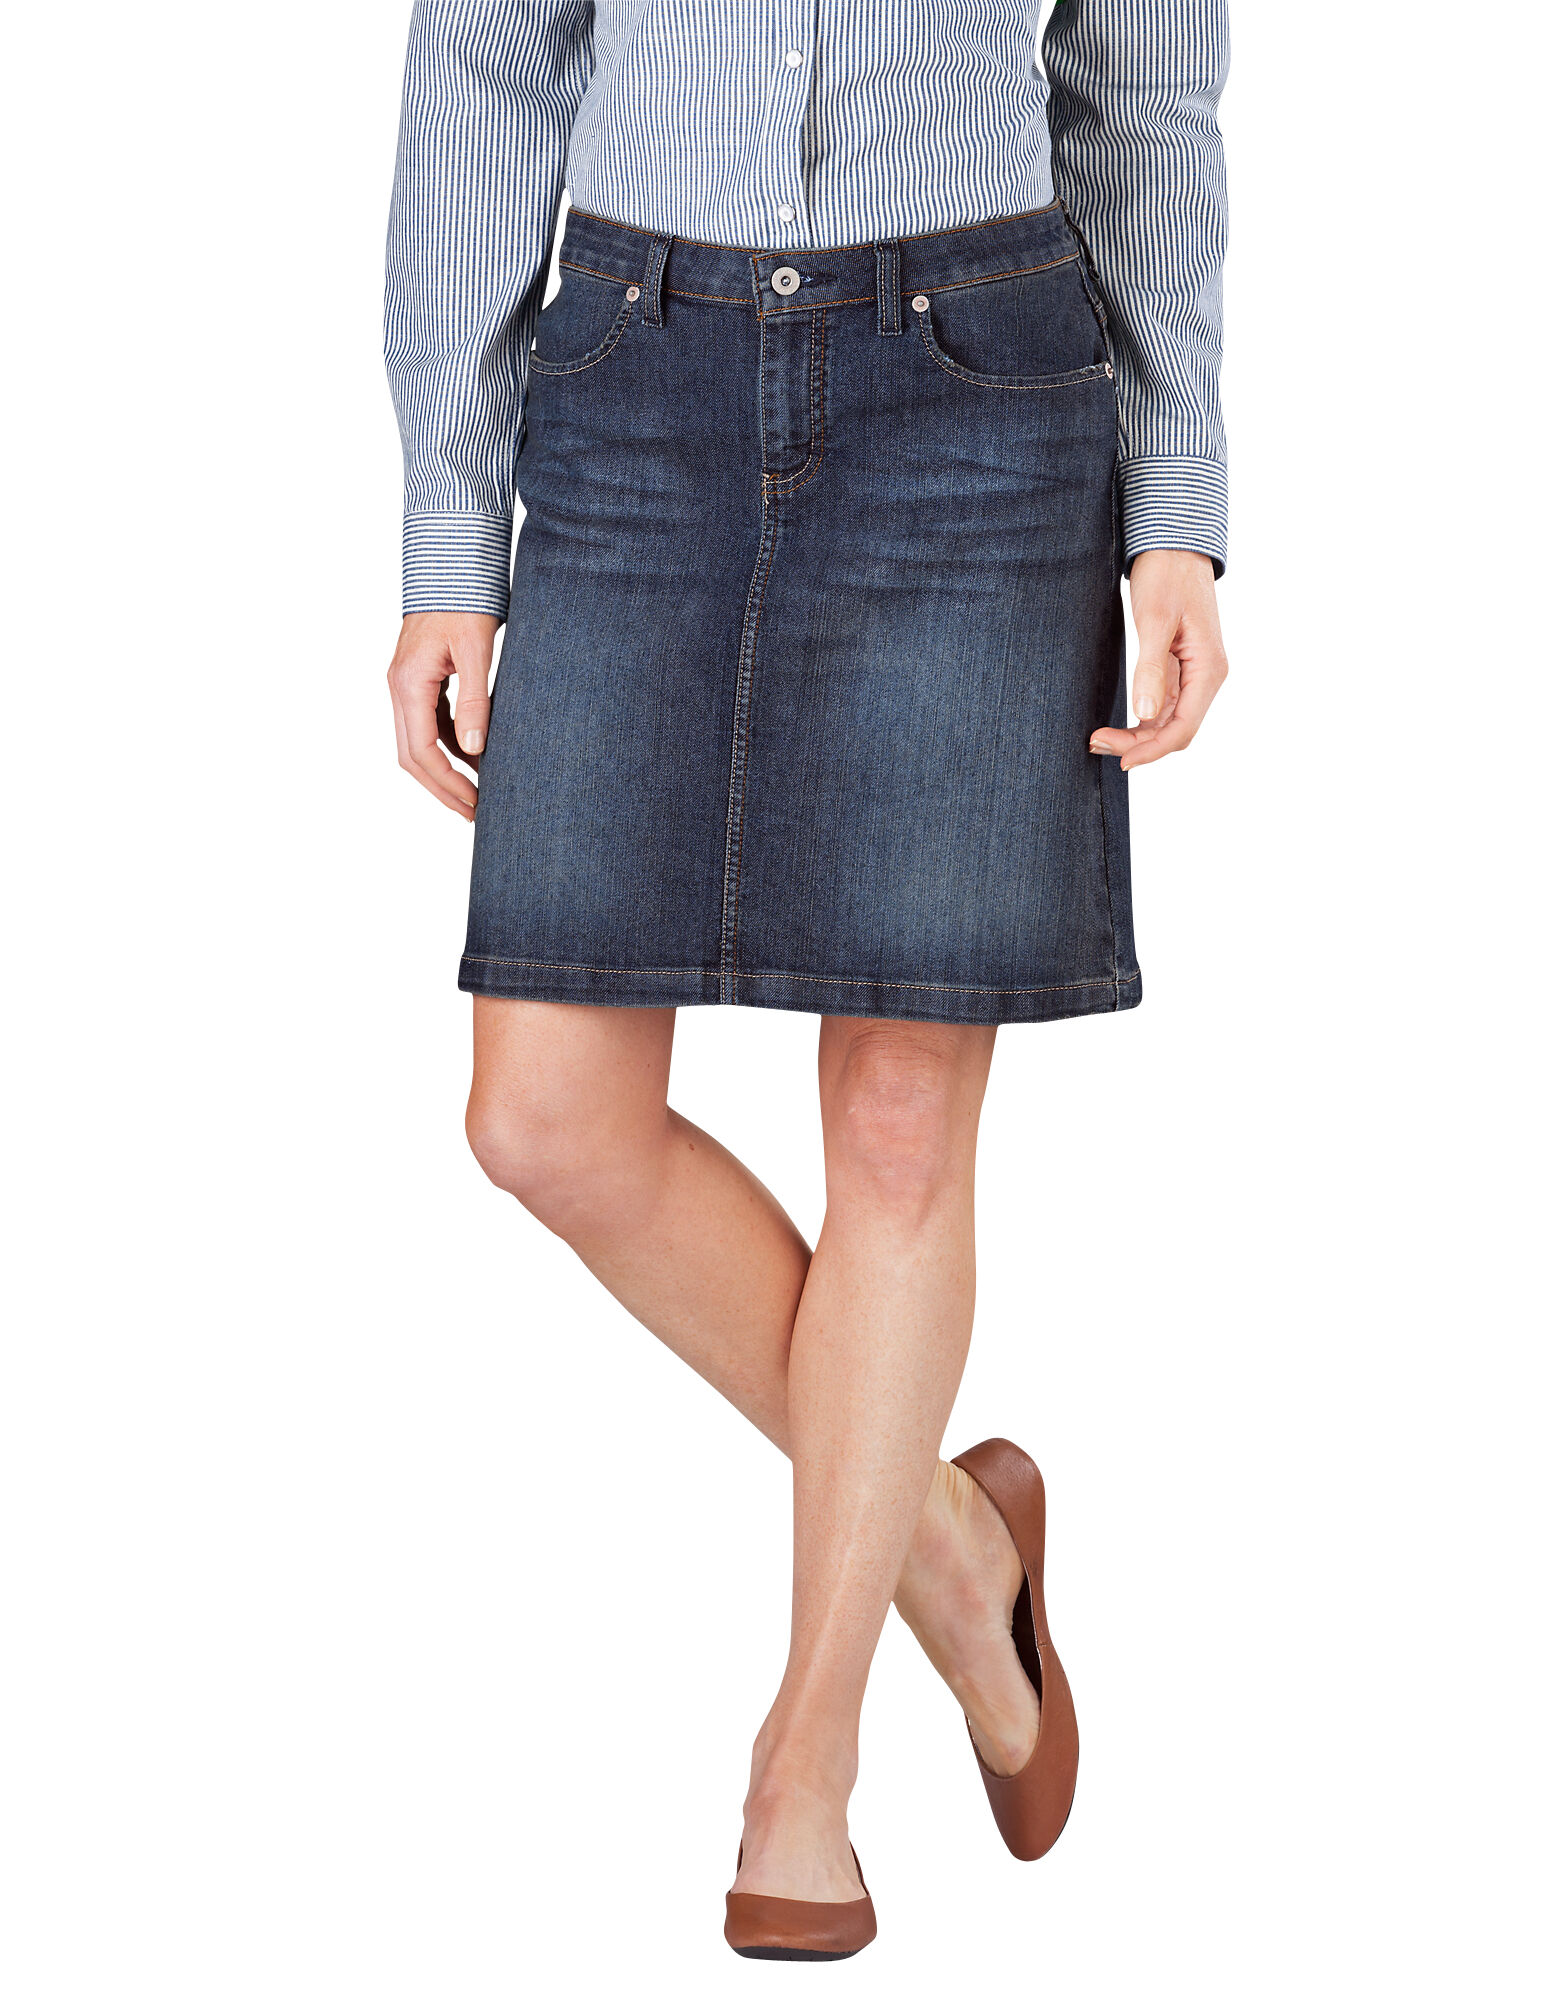 Women's Denim Skirts | Women's Shorts | Dickies